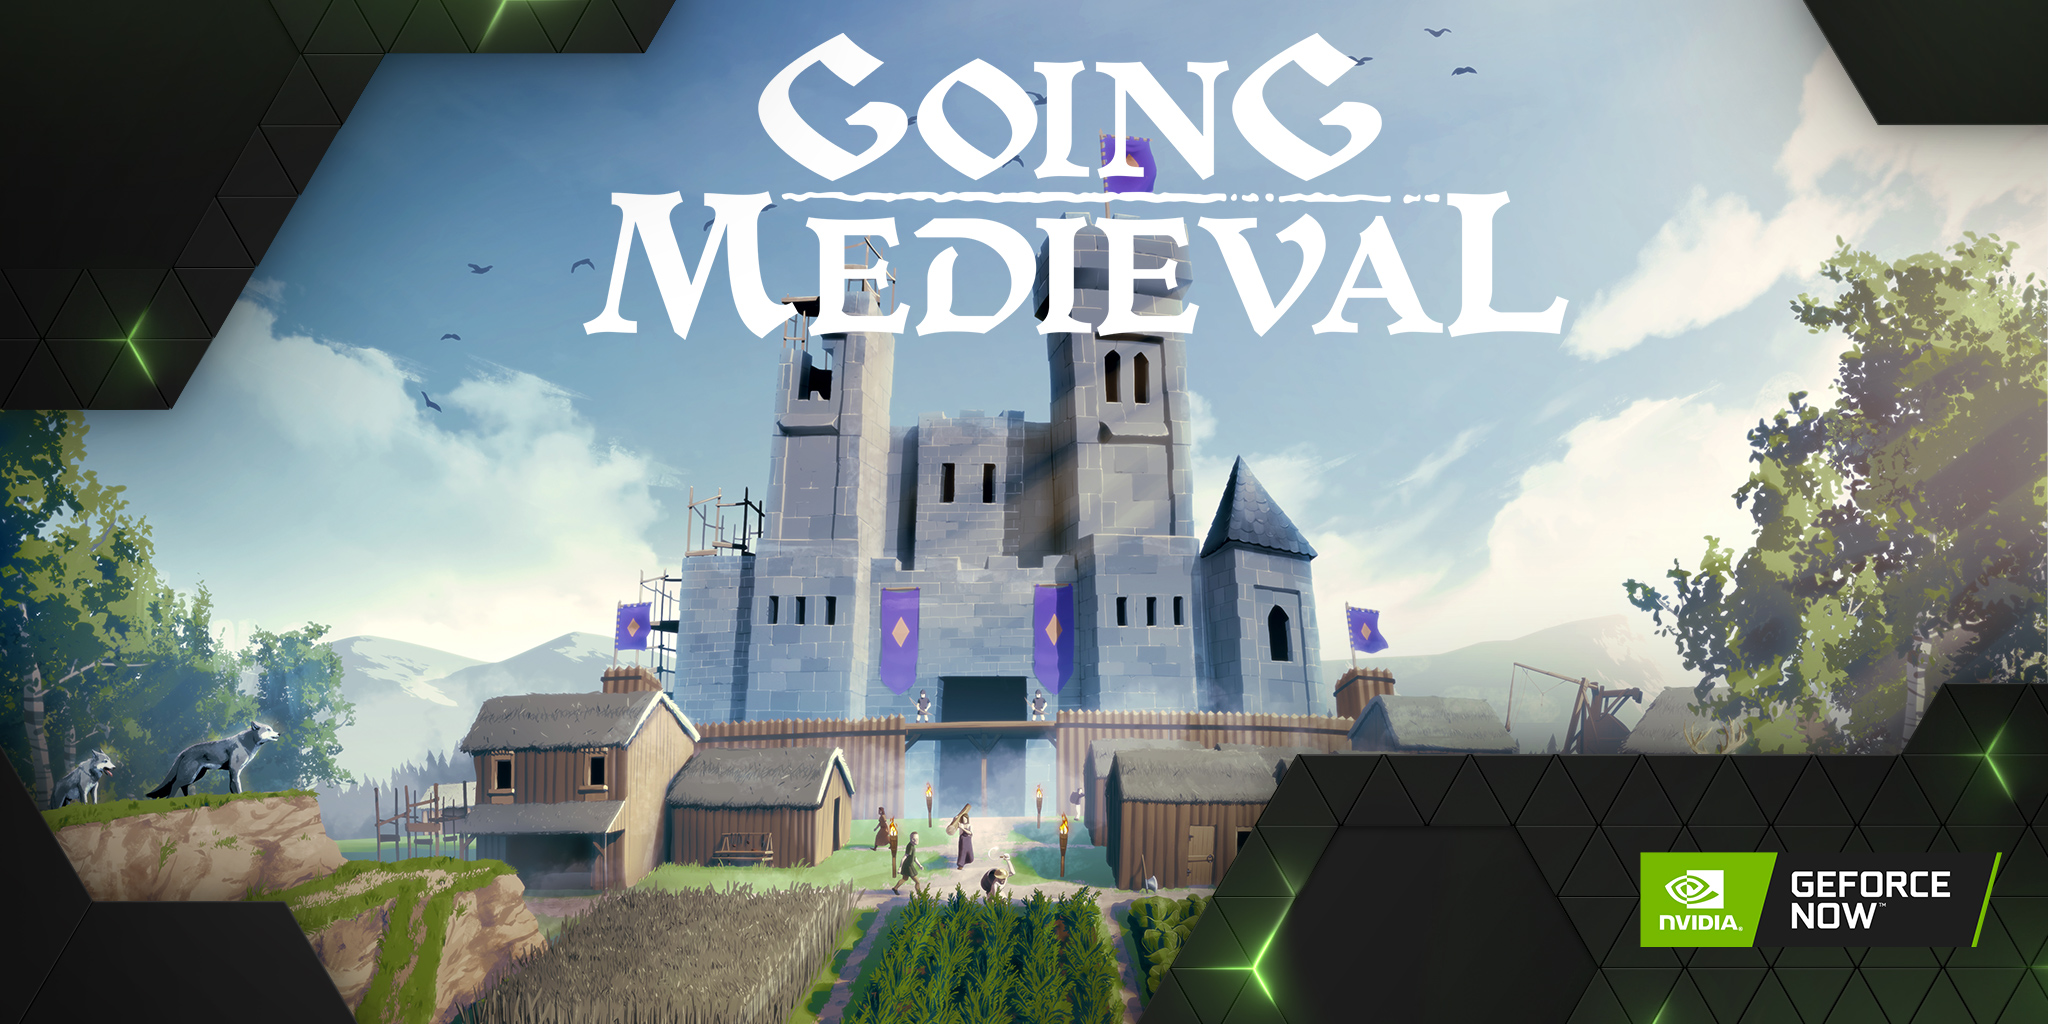 geforce now Going Medieval